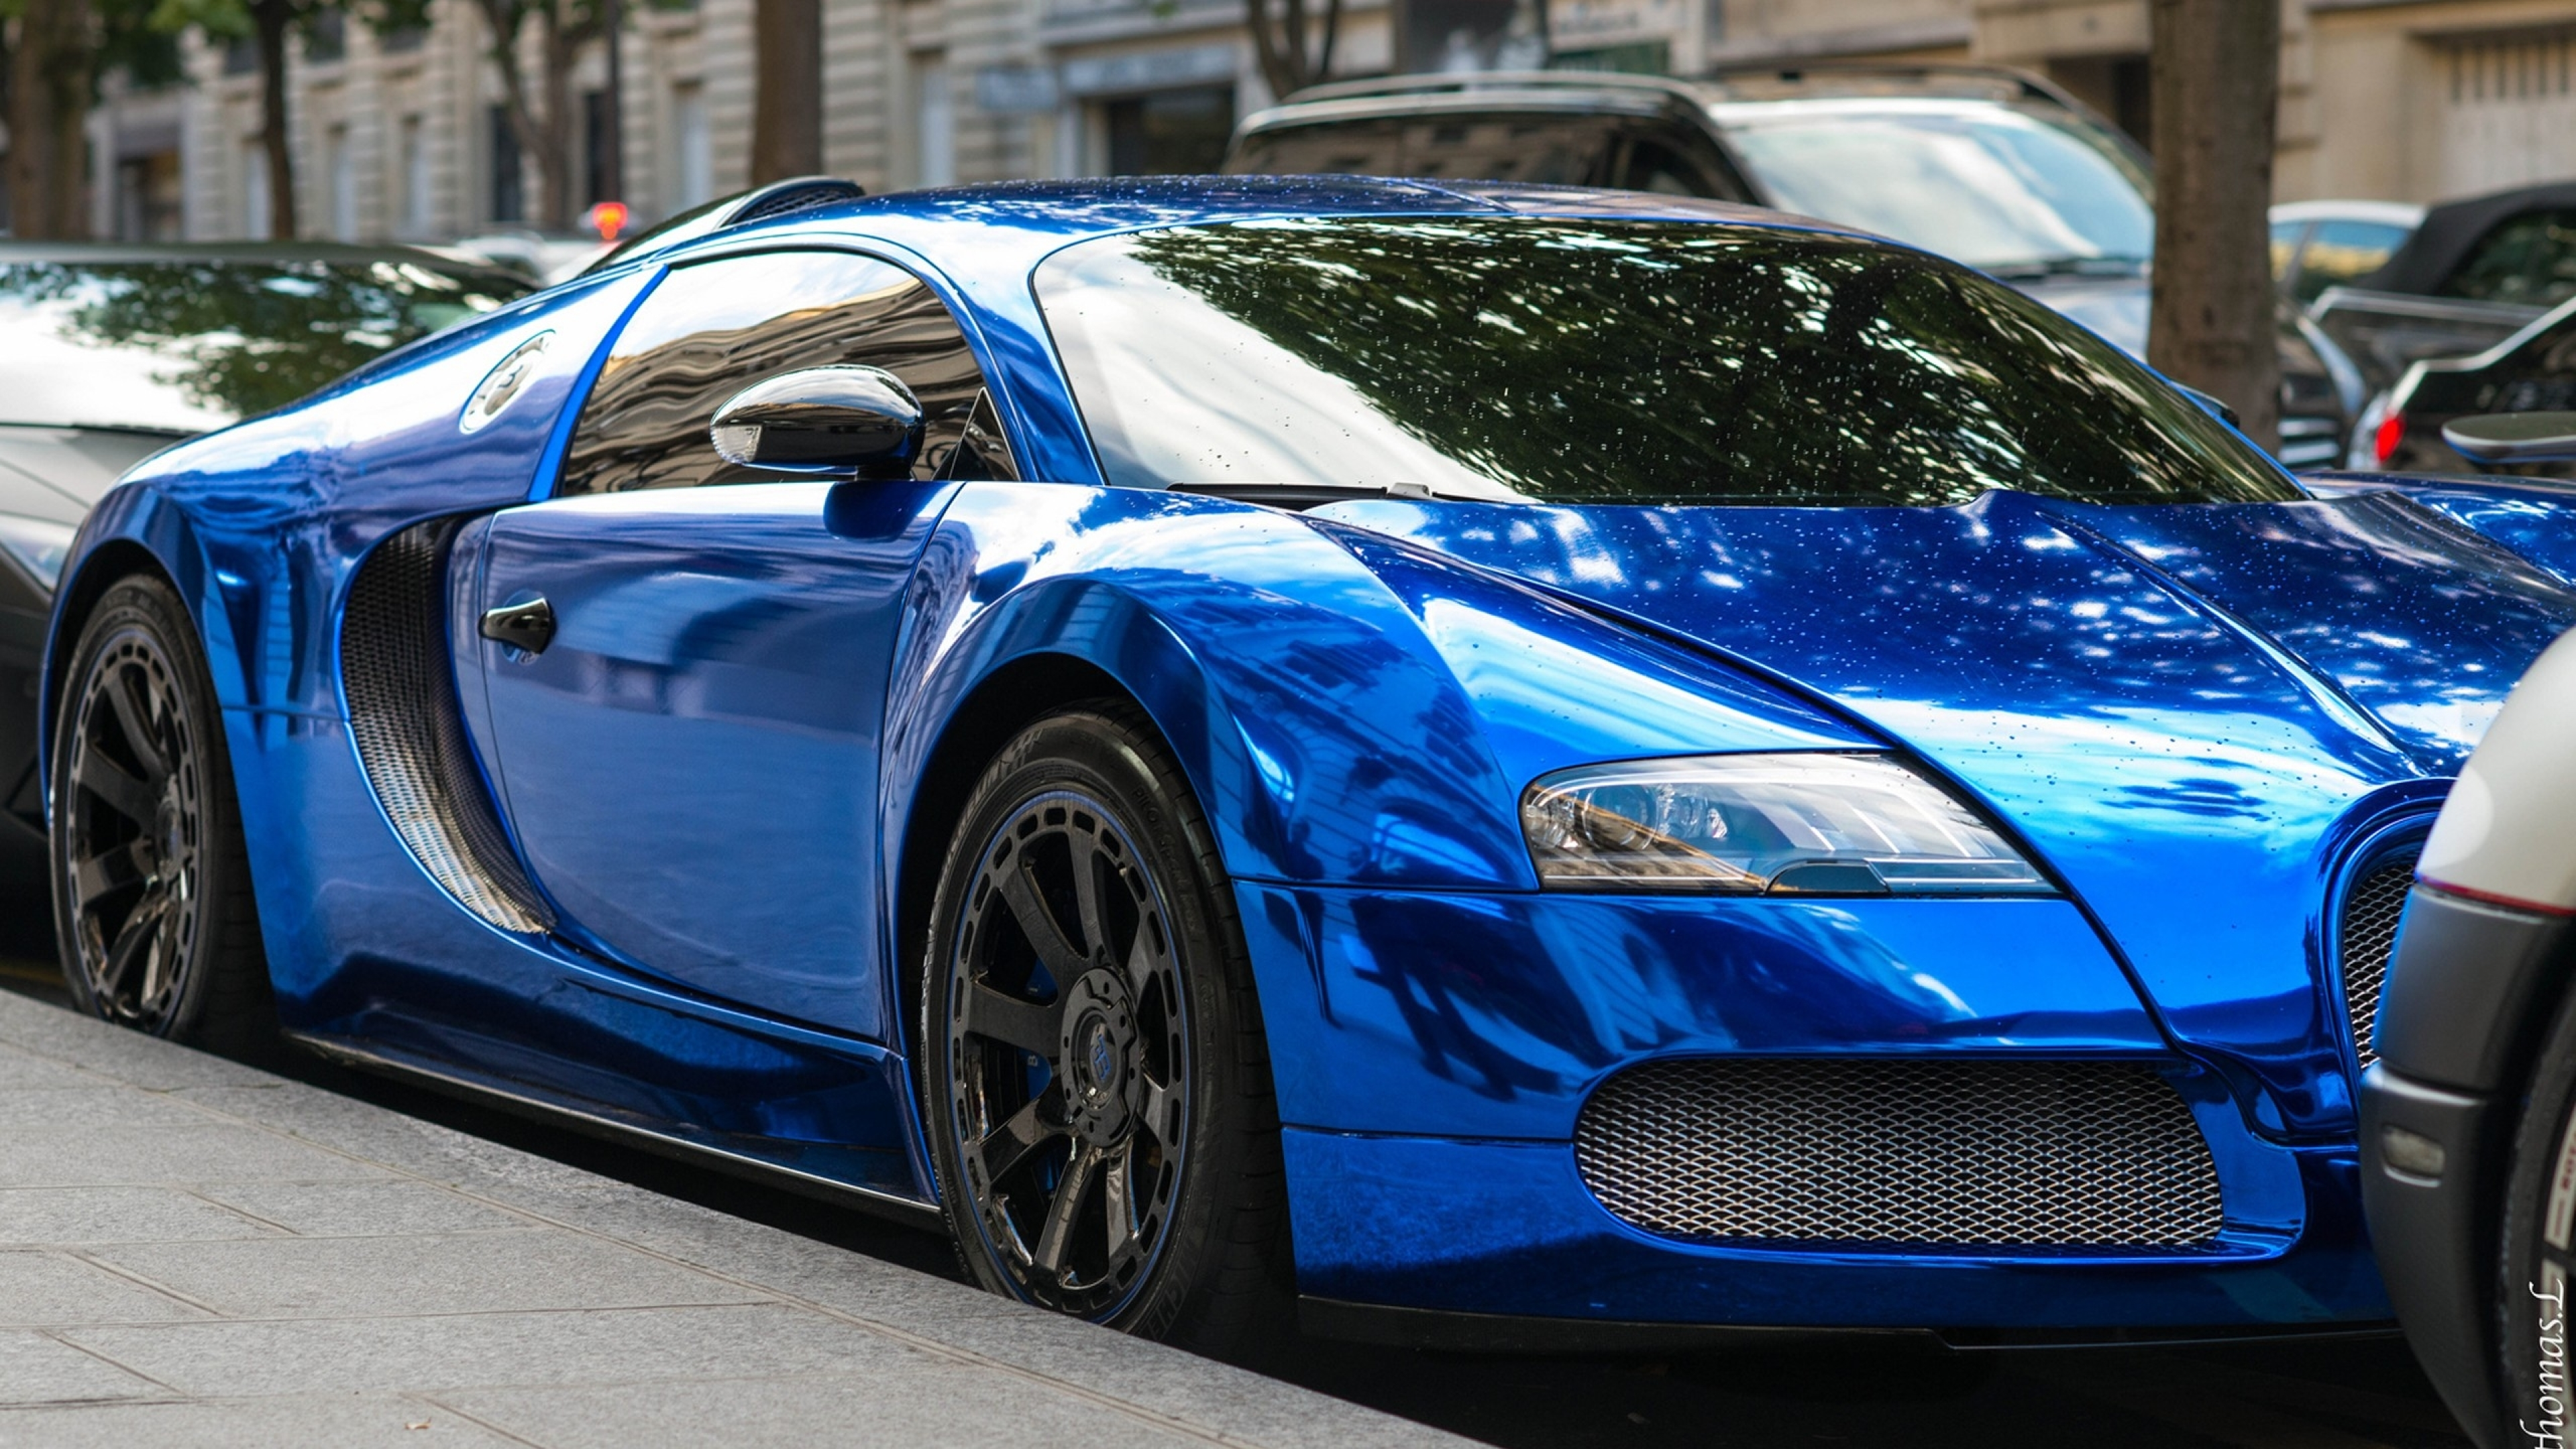 3840x2160 Bugatti Style Blue 4k Wallpaper Hd Man 4k Wallpapers Images Photos And Background